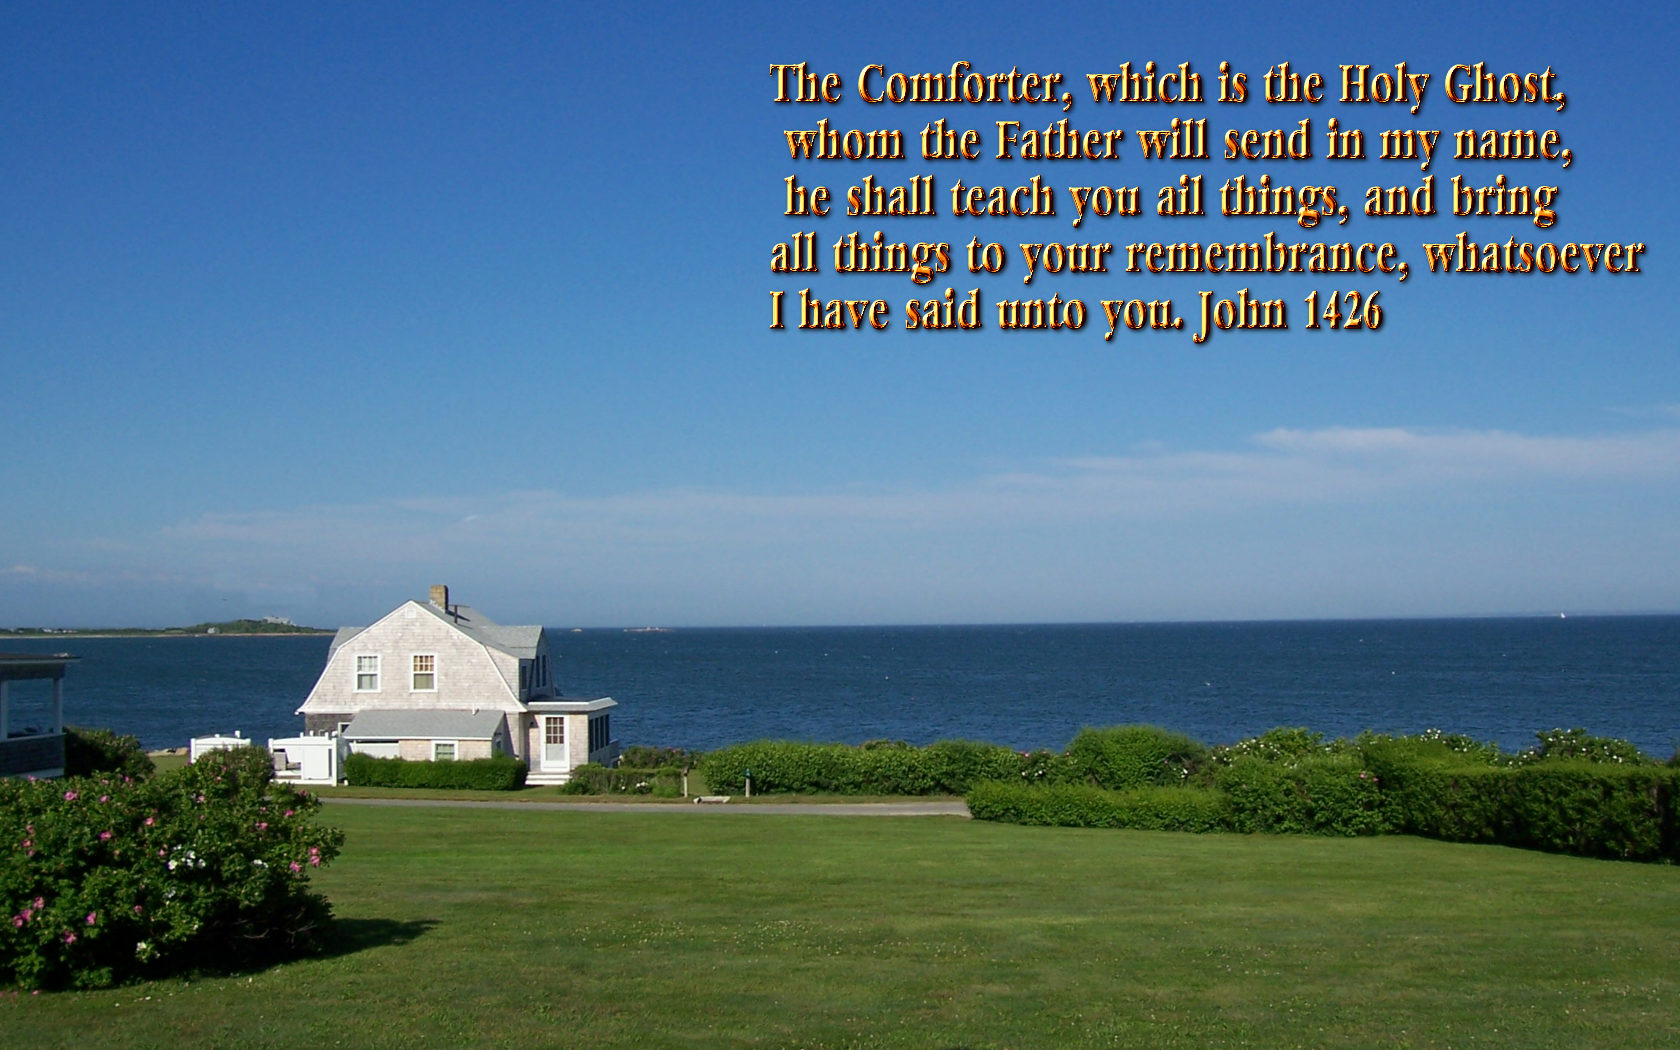 scenic wallpapers with bible verses 01 1680x1050